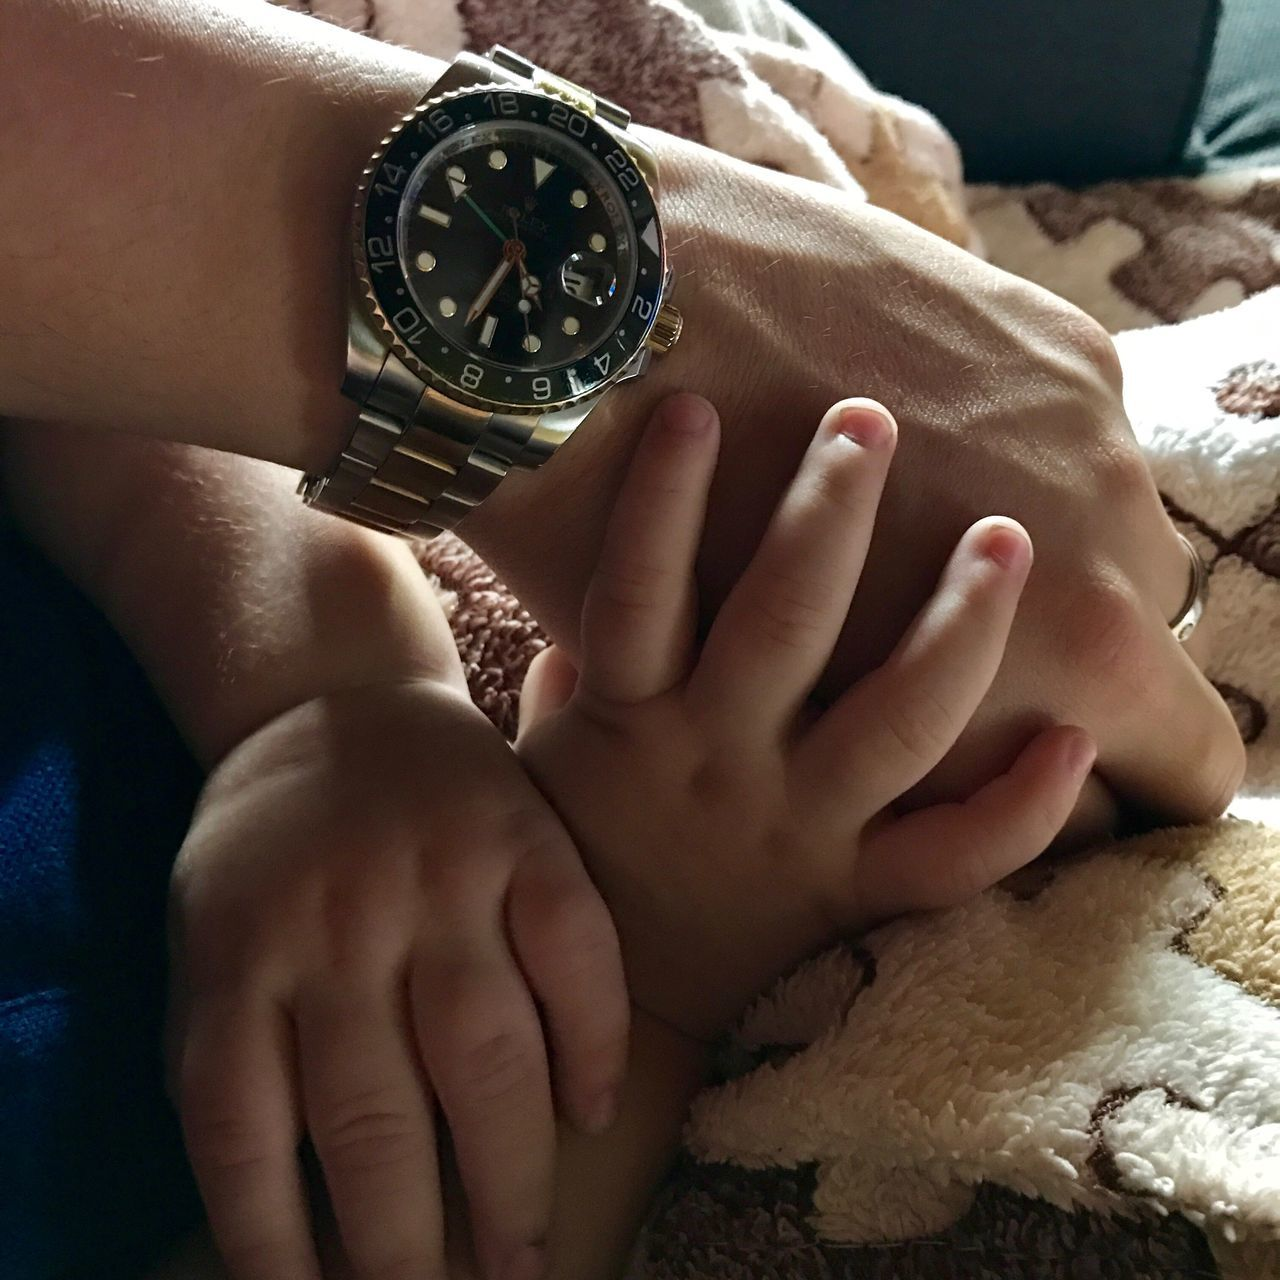 time, human hand, real people, human body part, childhood, togetherness, bed, indoors, close-up, women, bonding, clock, day, adult, people